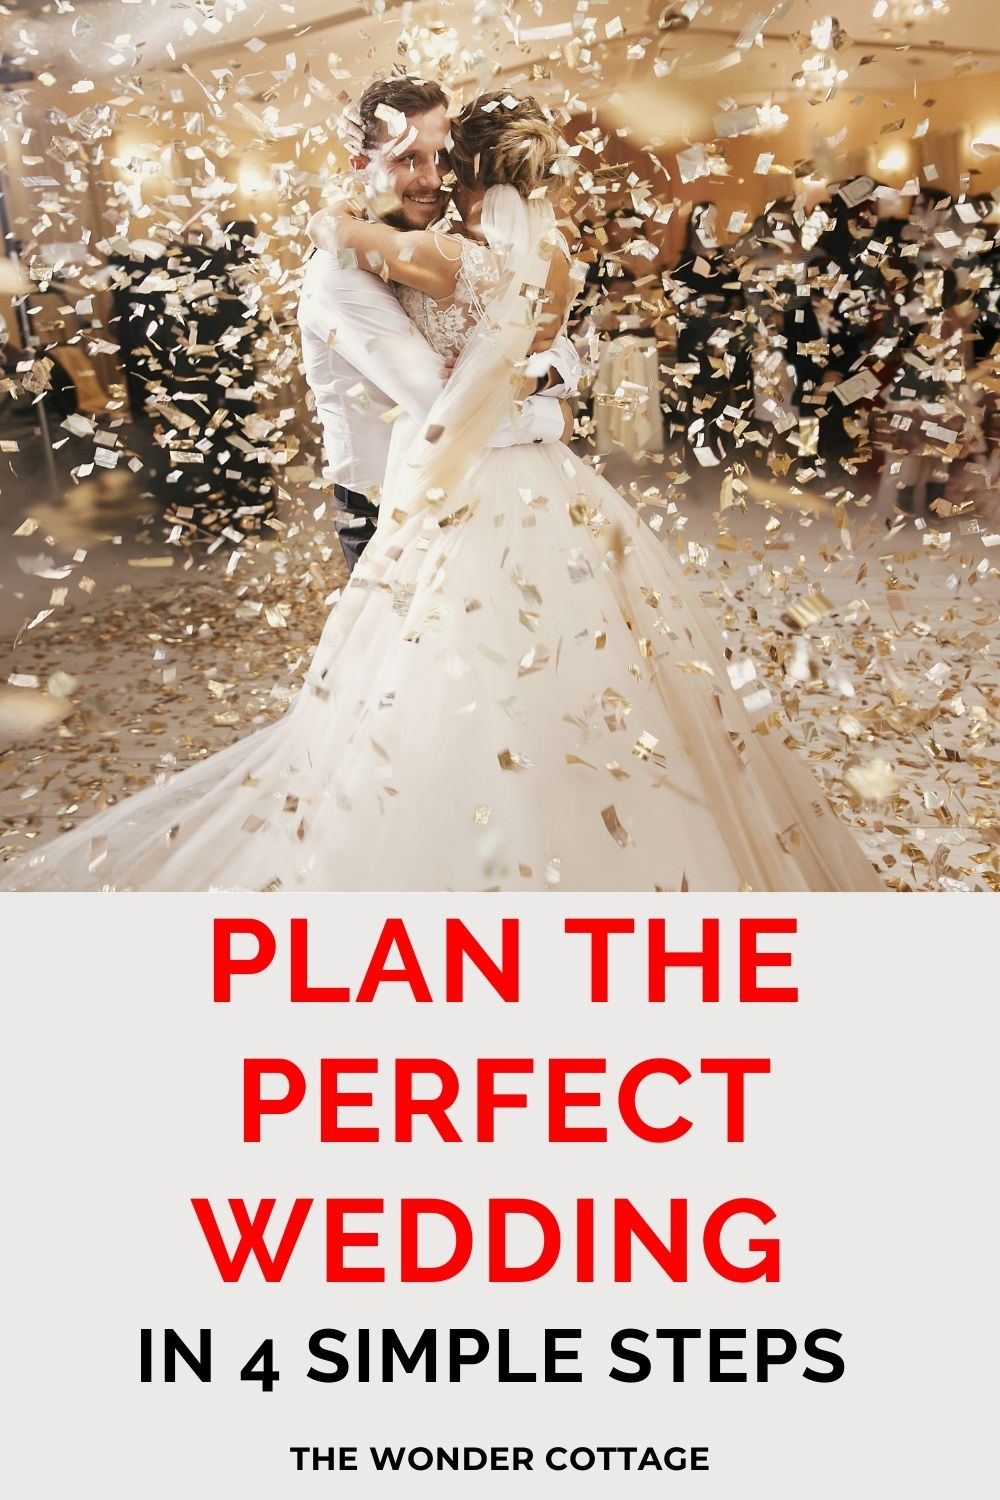 Plan the perfect wedding in 4 simple steps